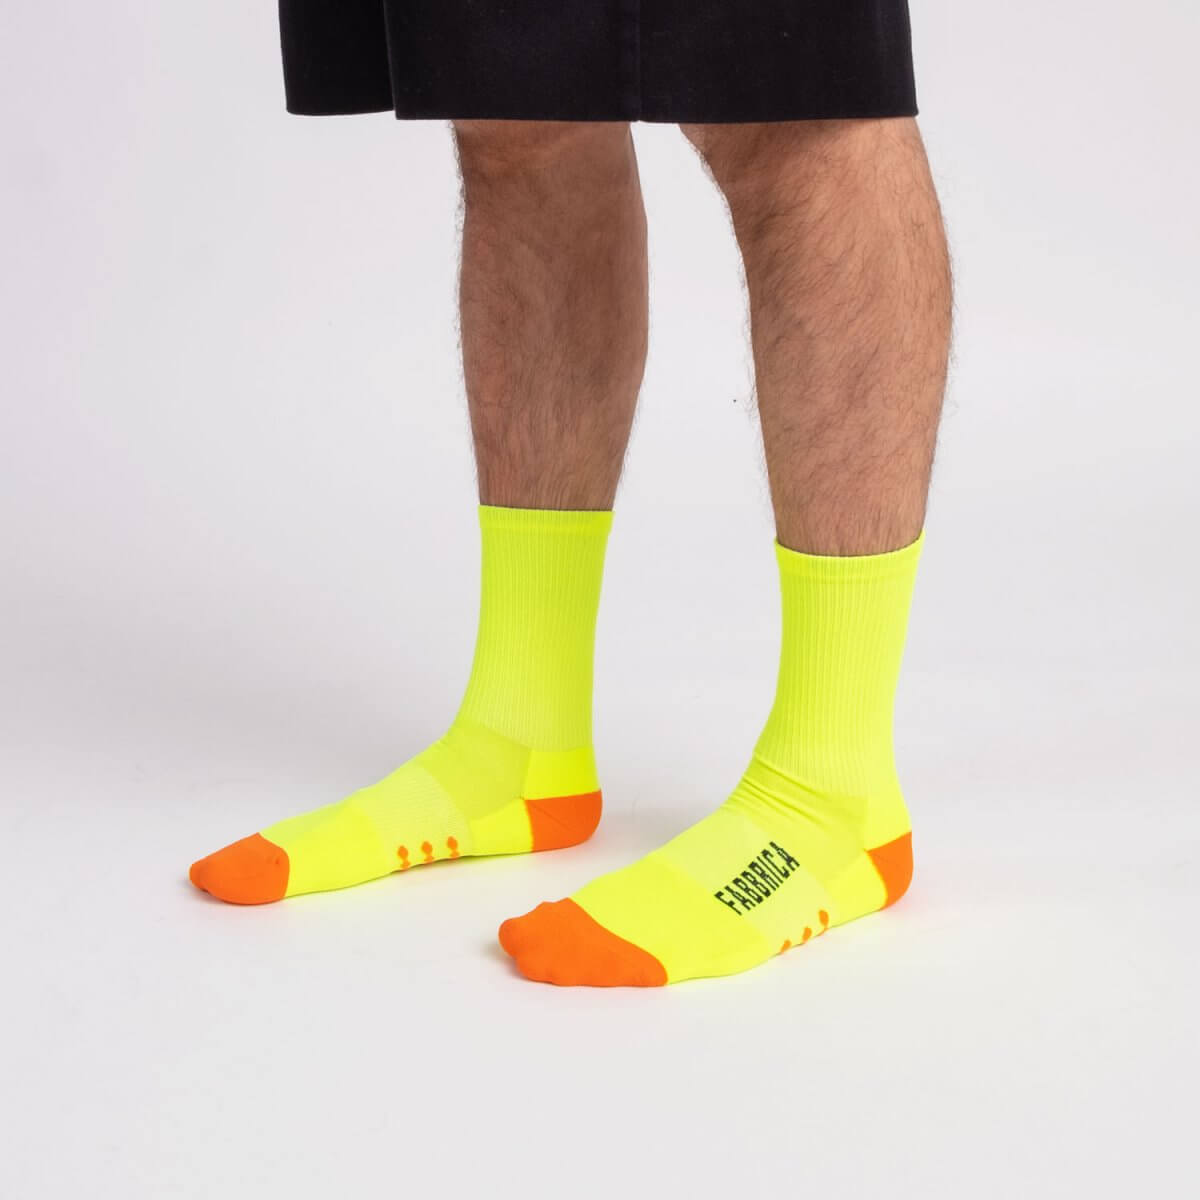 calze-fabbrica-fluo-gialle-qskin